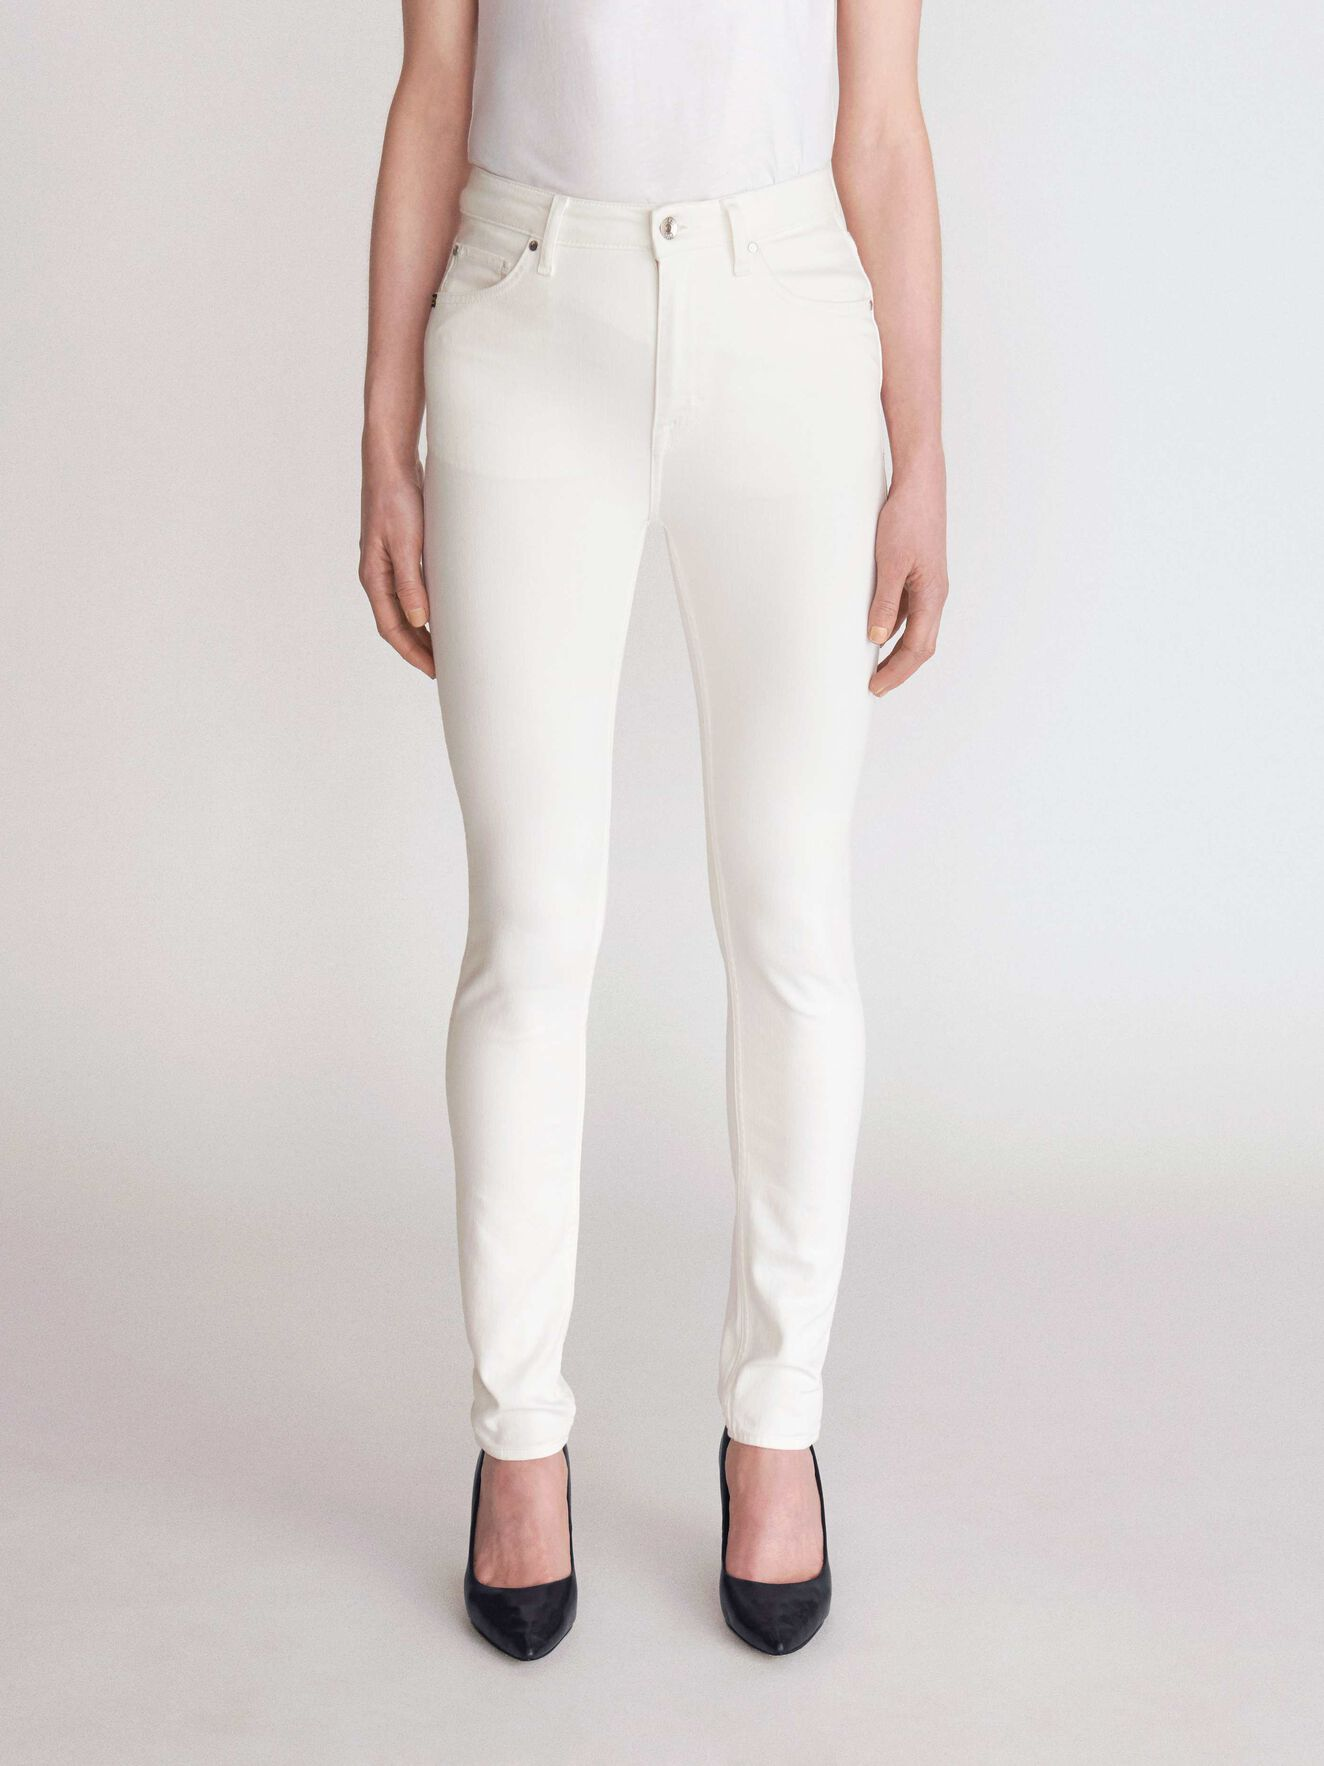 Shelly Jeans in White from Tiger of Sweden